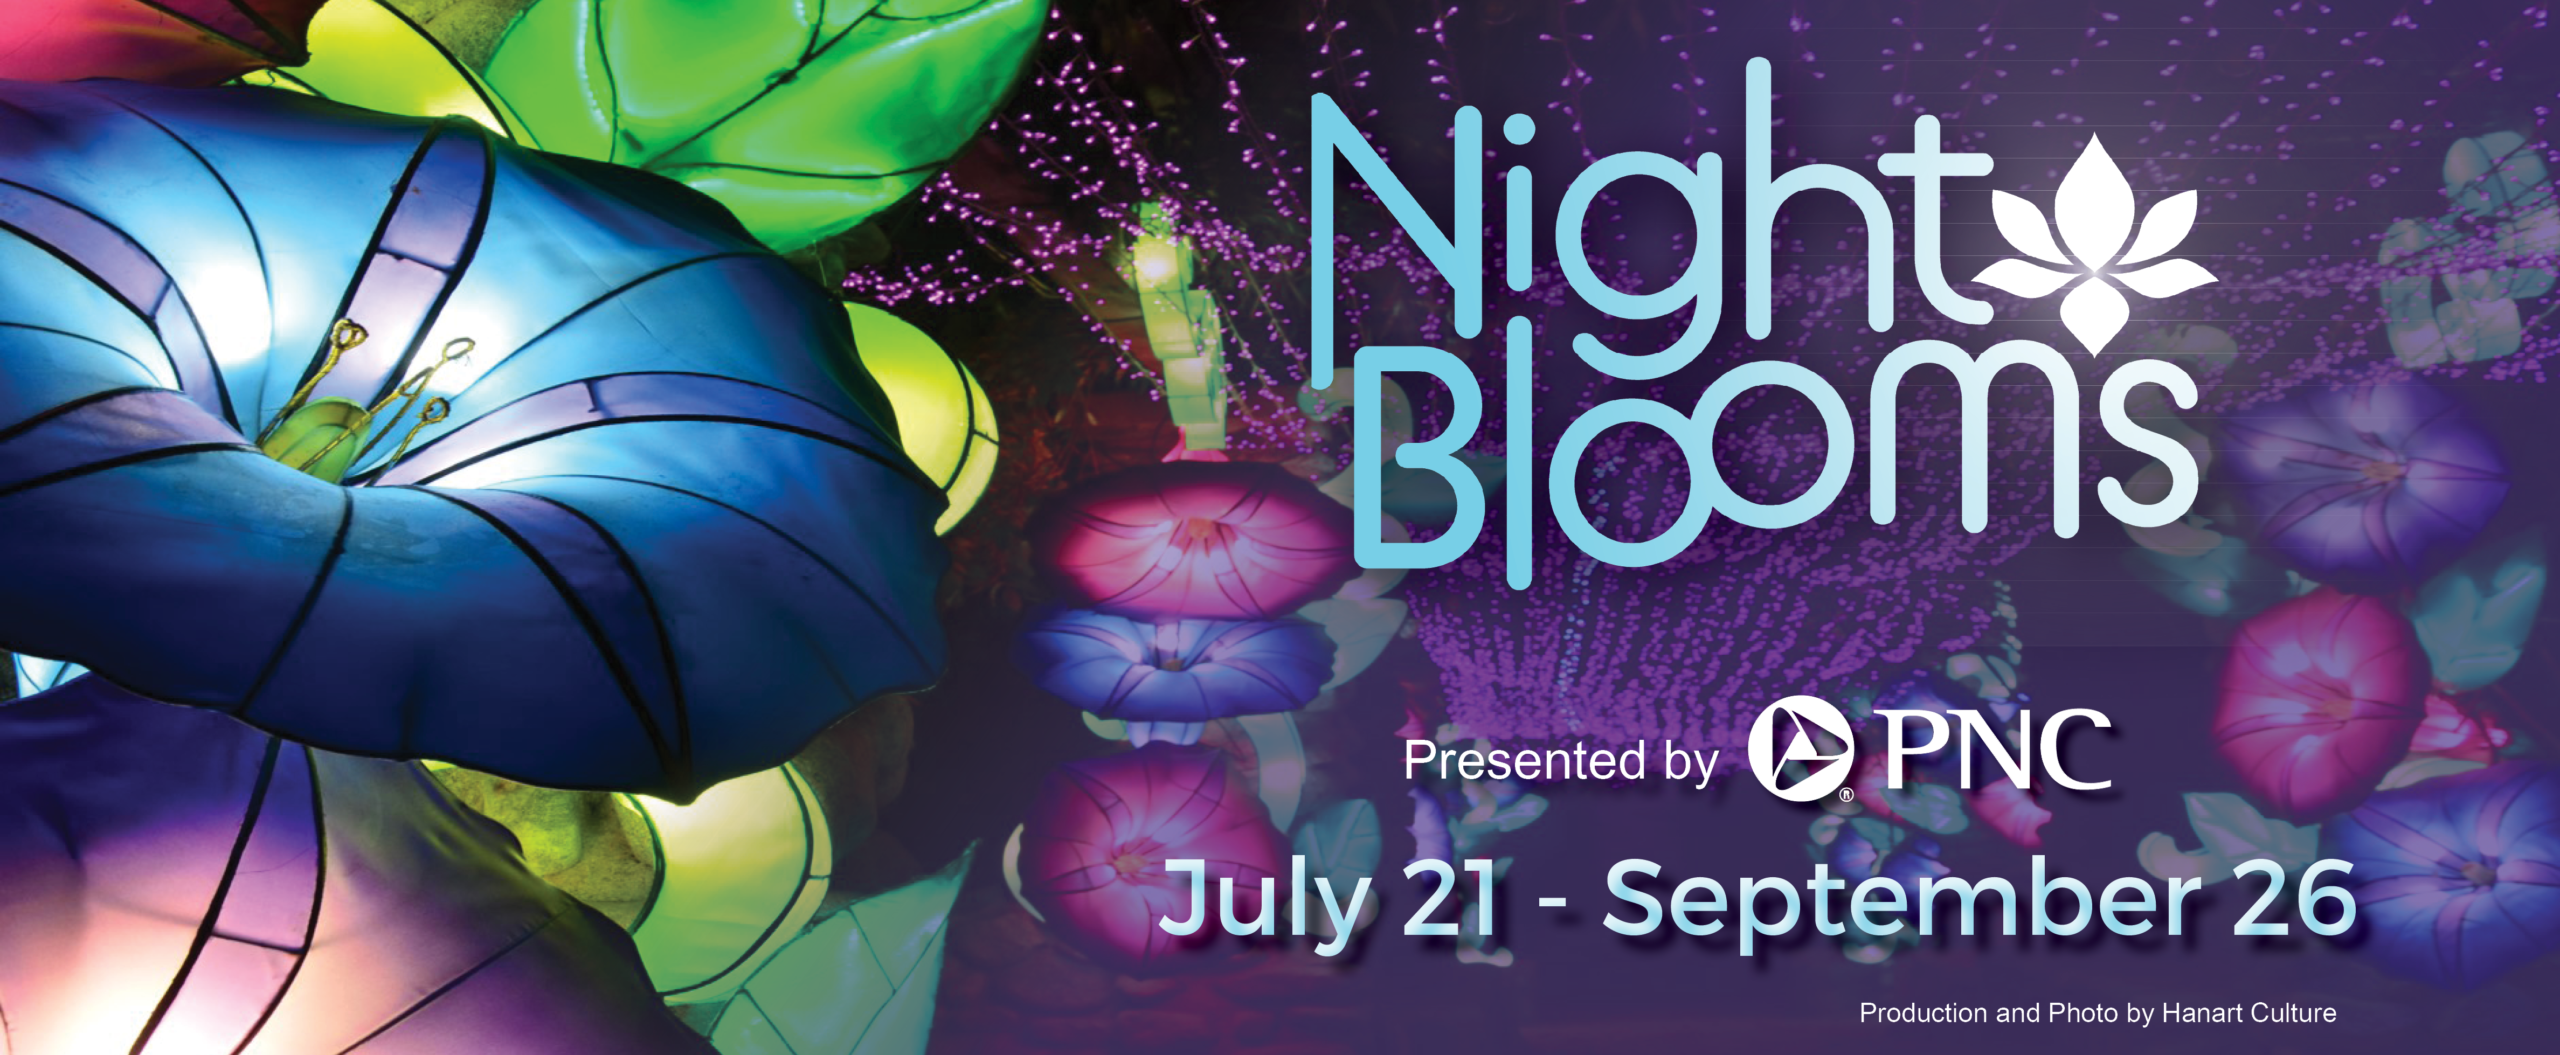 Night Blooms Home Page